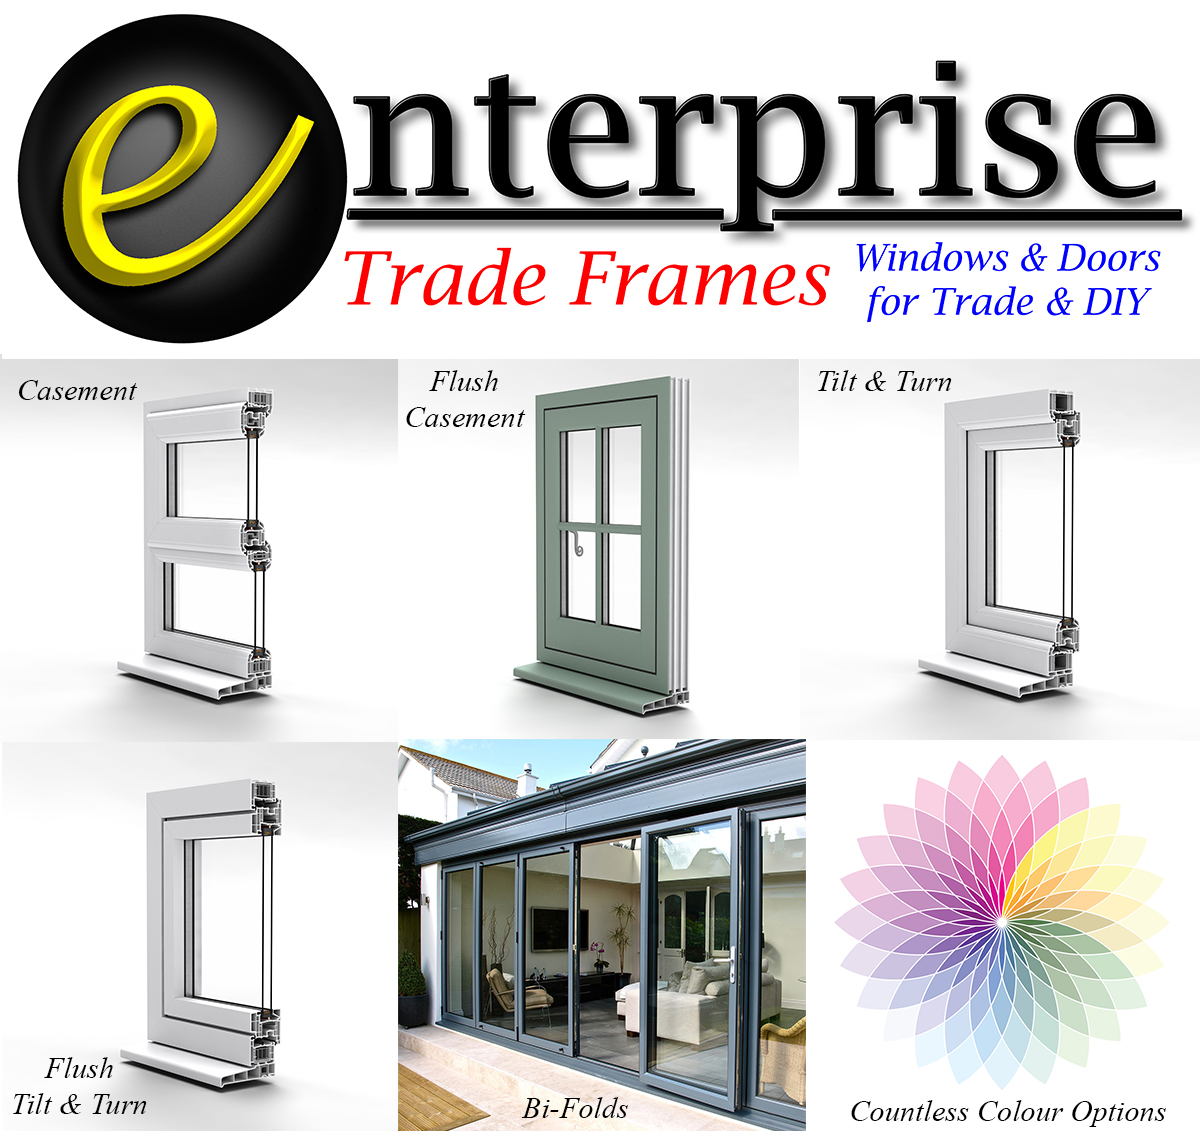 Enterprise Trade Frames offer a range of Windows, Doors, Conservatories and Bi-Folds to Trade and DIY.